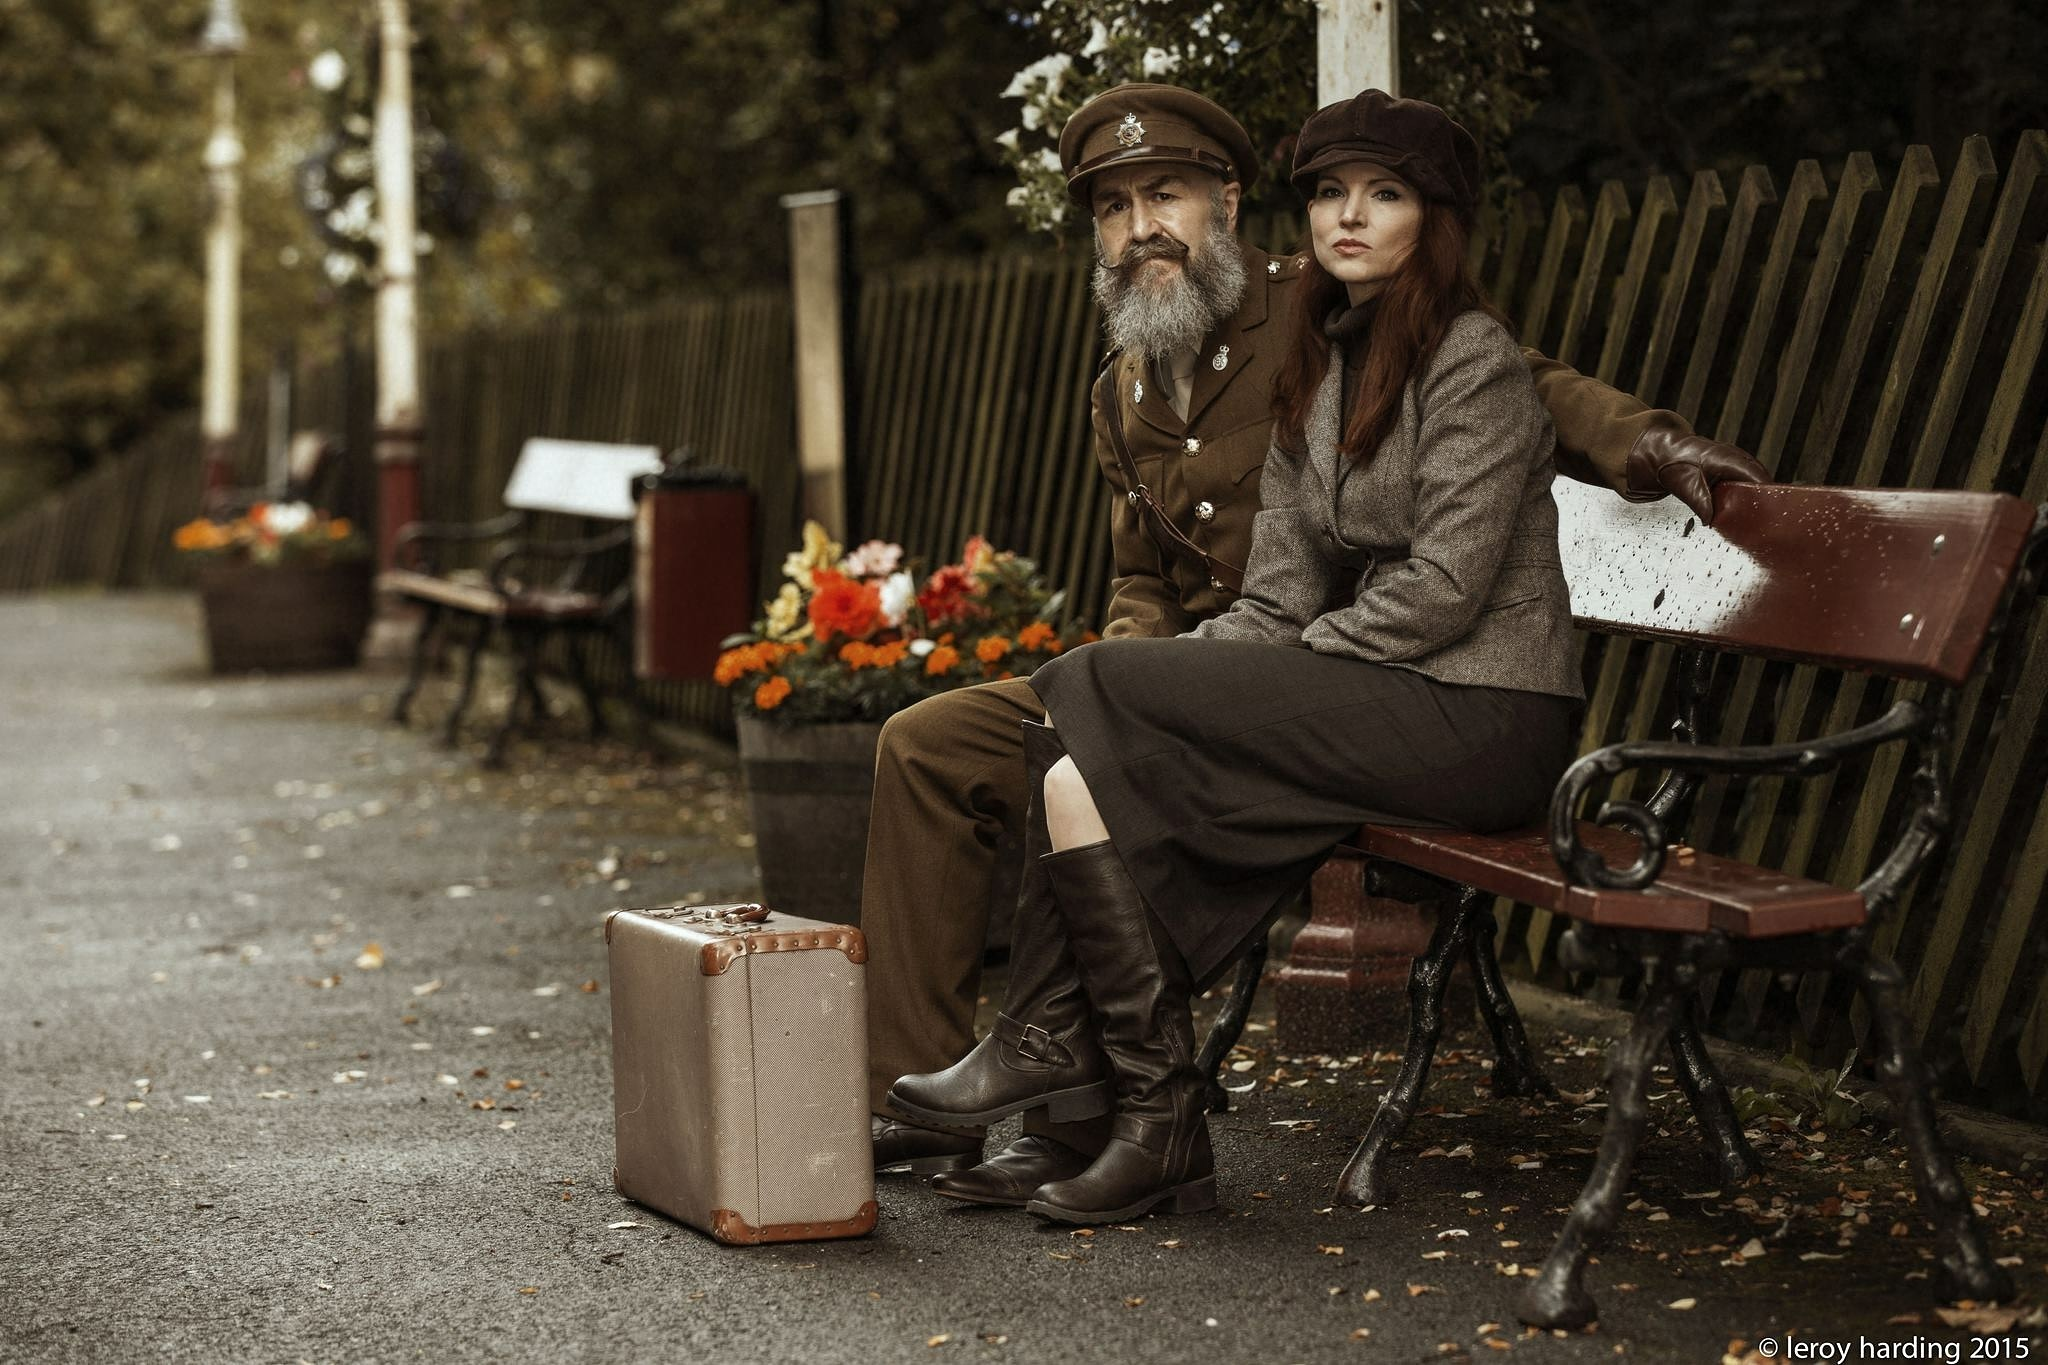 Waiting for the Train! by philip.atkins